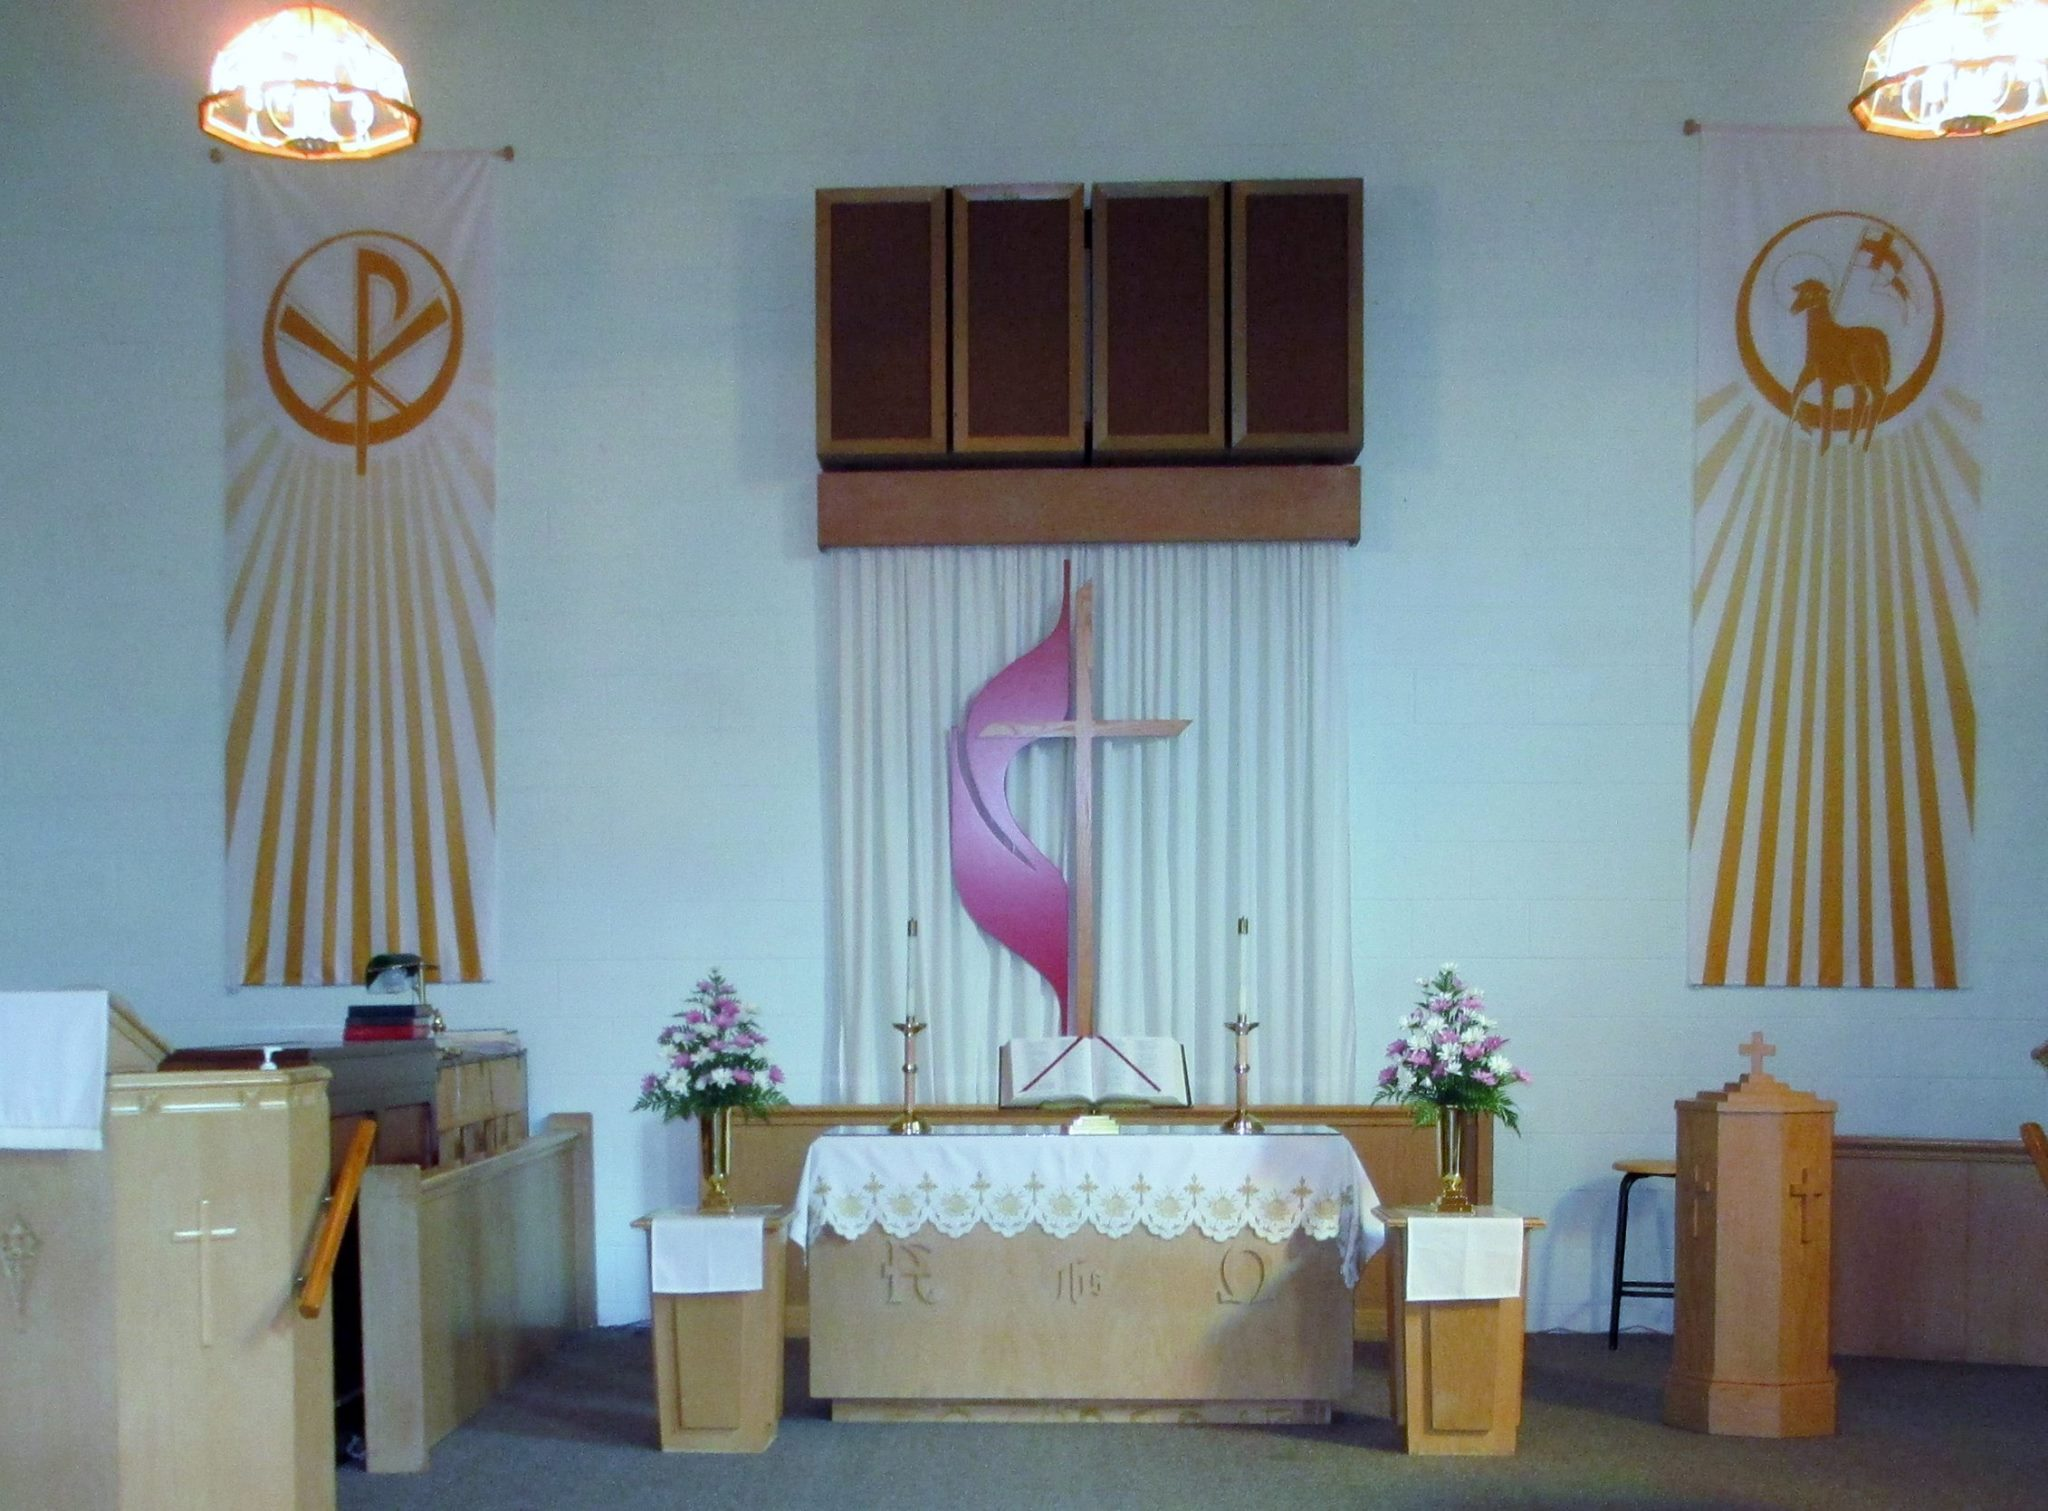 Inside of Cedar Lake United Methodist Church